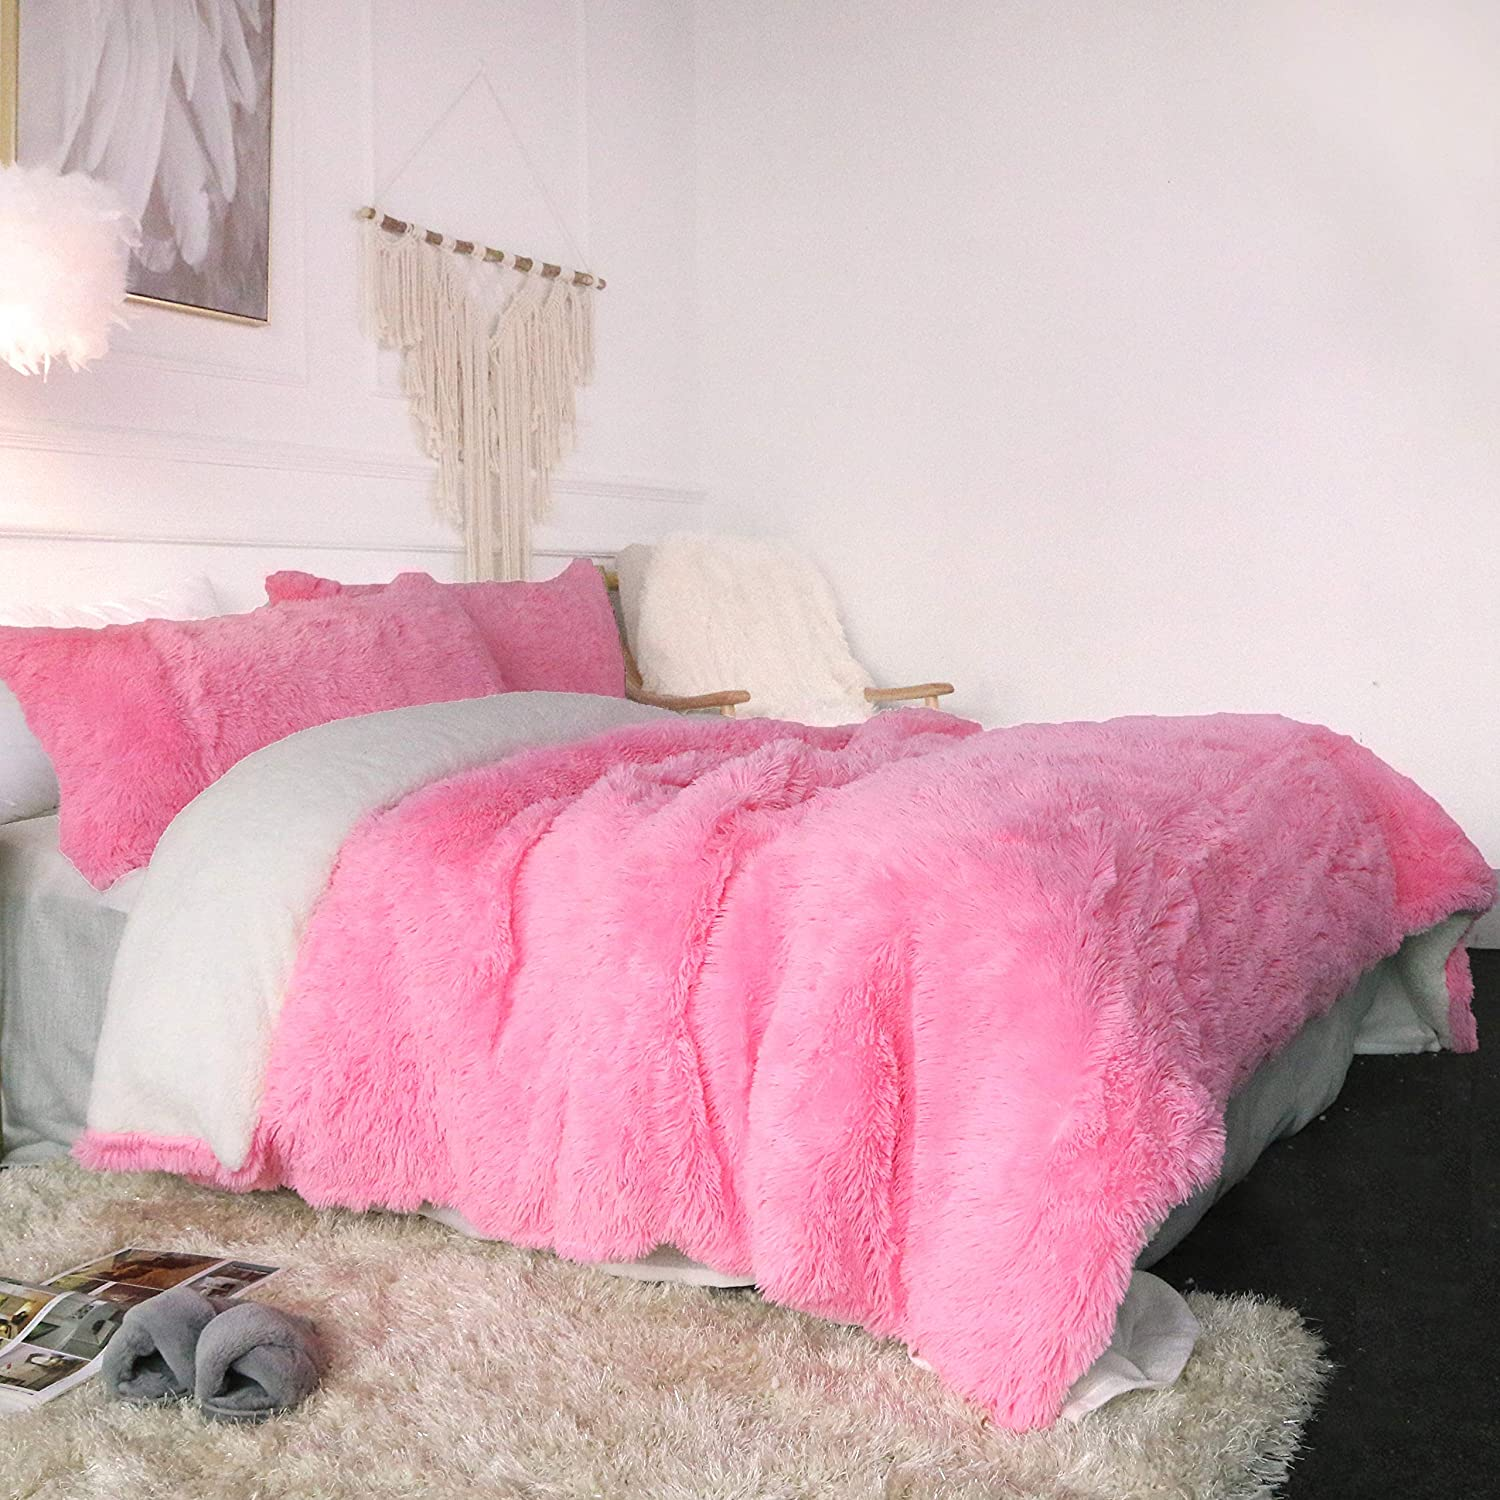 Sleepwish Luxury Plush Shaggy Bedding - 3 Pieces - 1 Faux Fur Duvet Cover and 2 Pillow Sham - Long Shaggy Hair, Sherpa Fleece, Reversible Comforter Cover Set - Pink -King